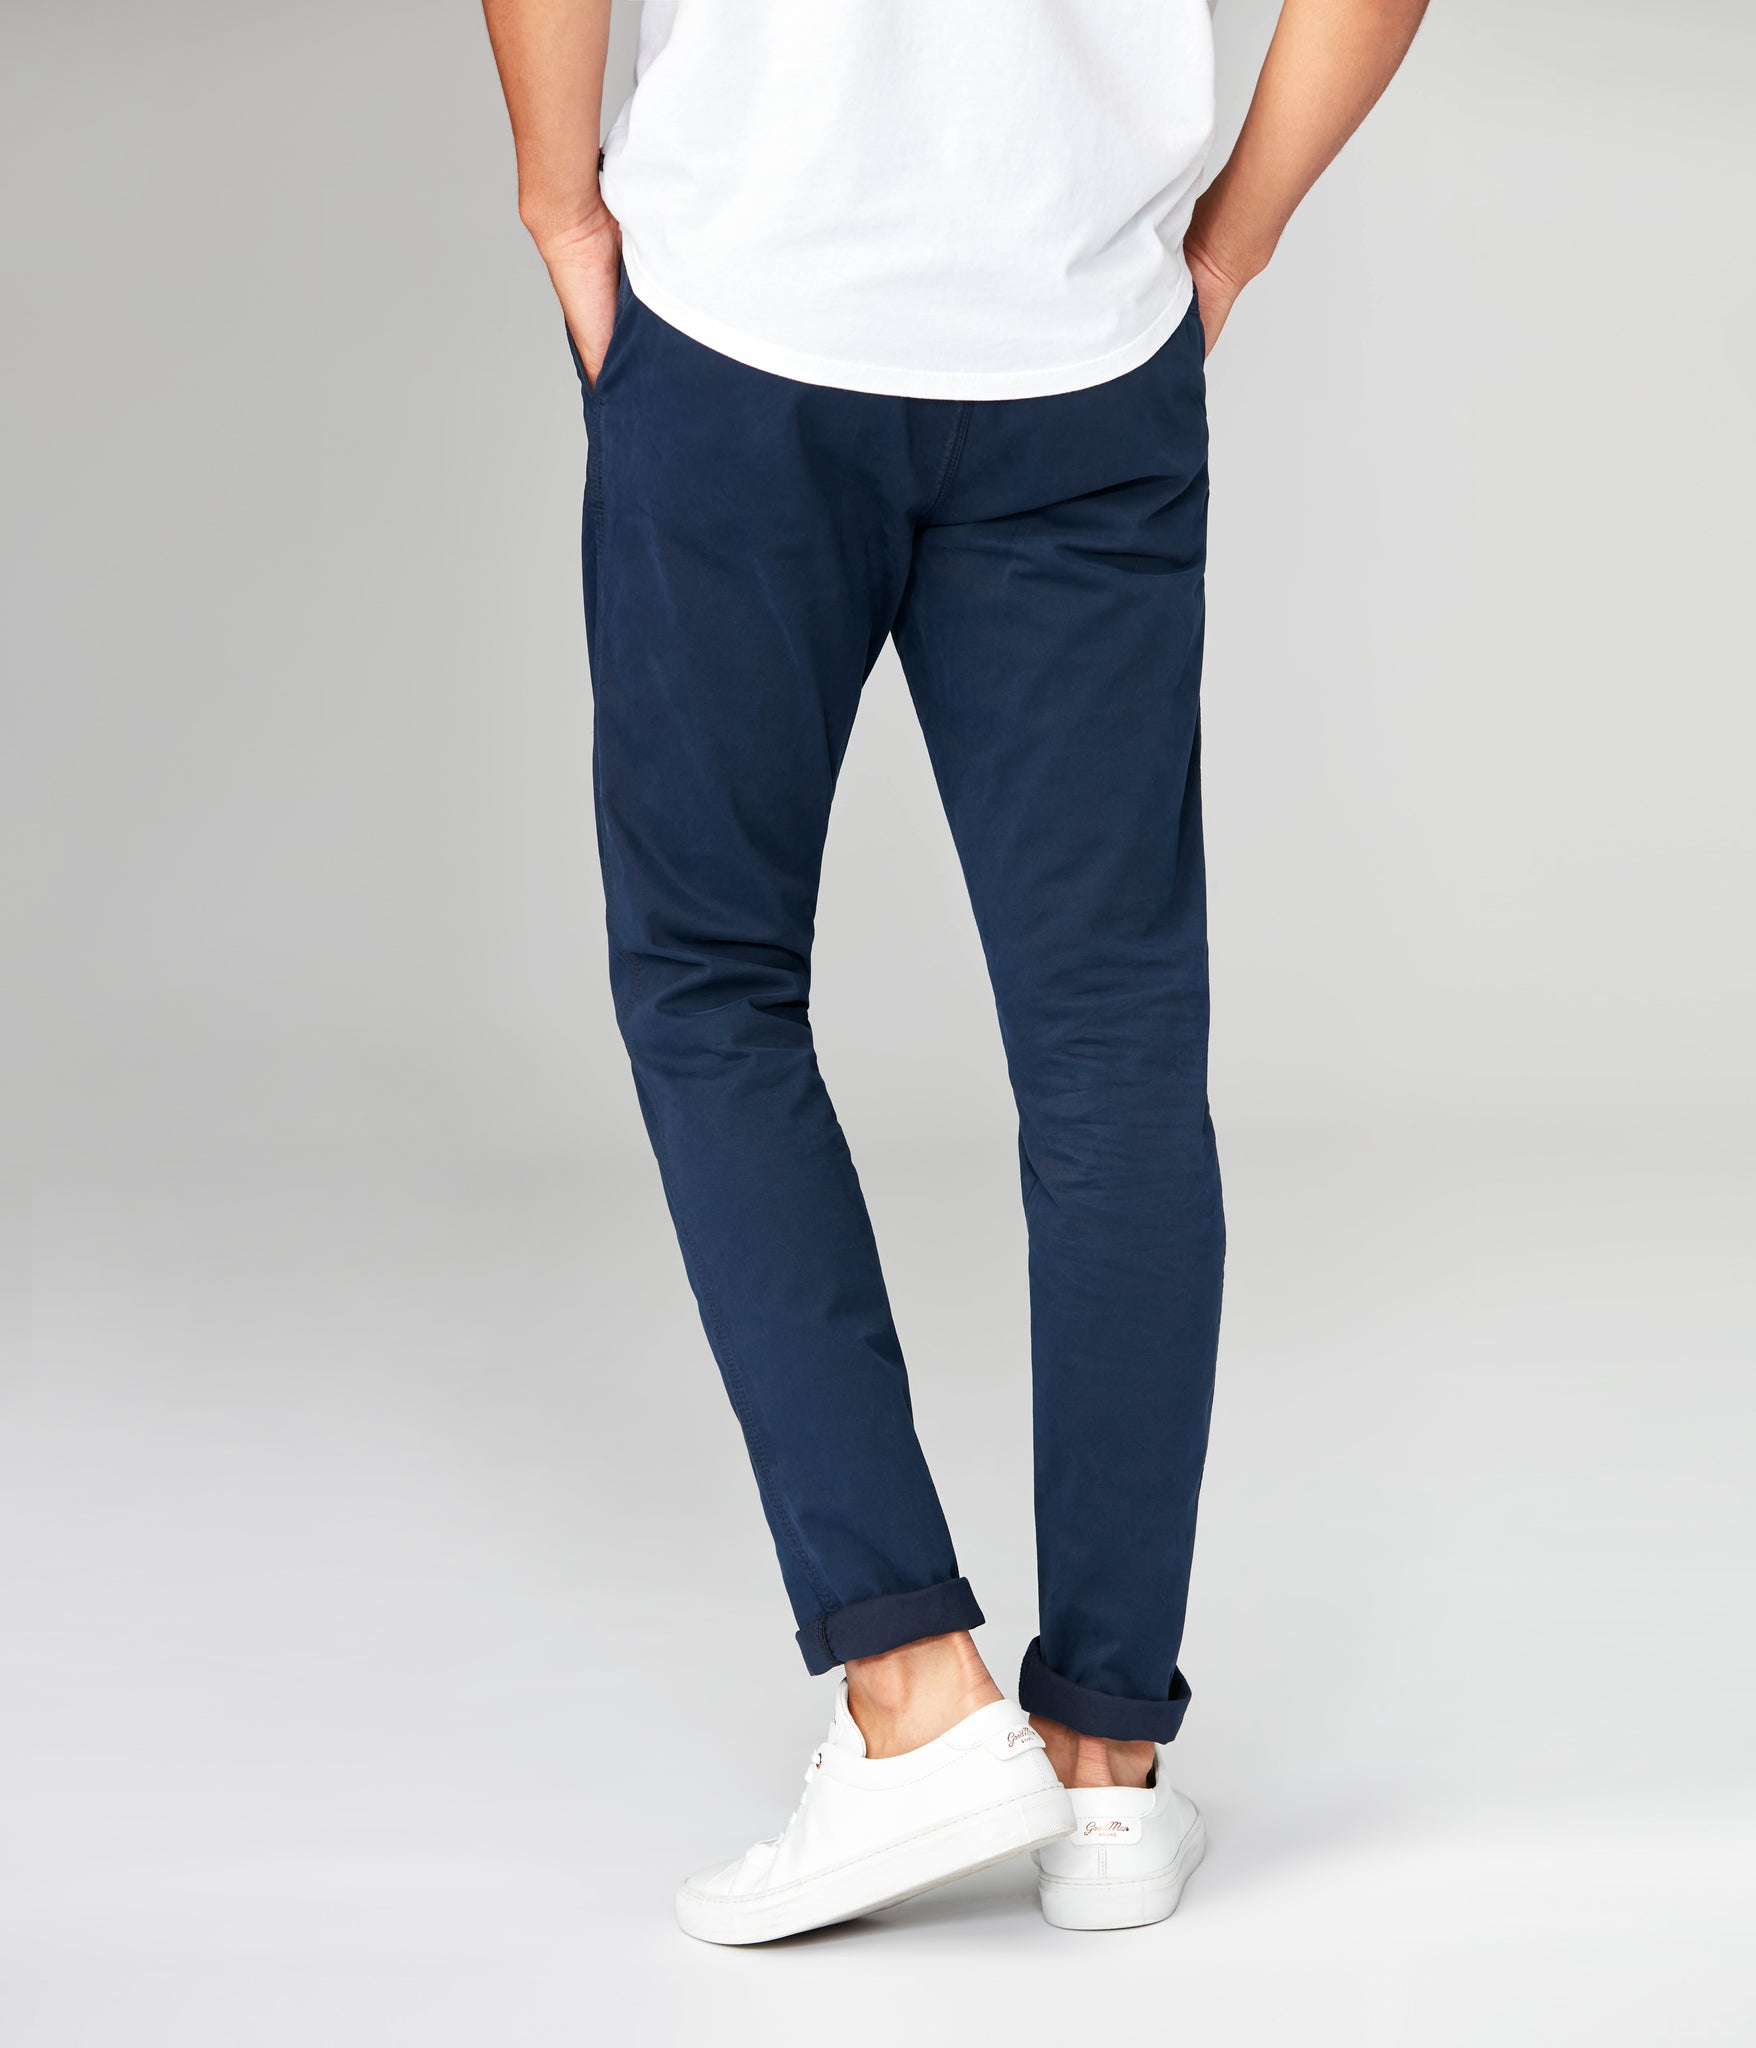 Pro Stretch Twill Star Chino - Indigo